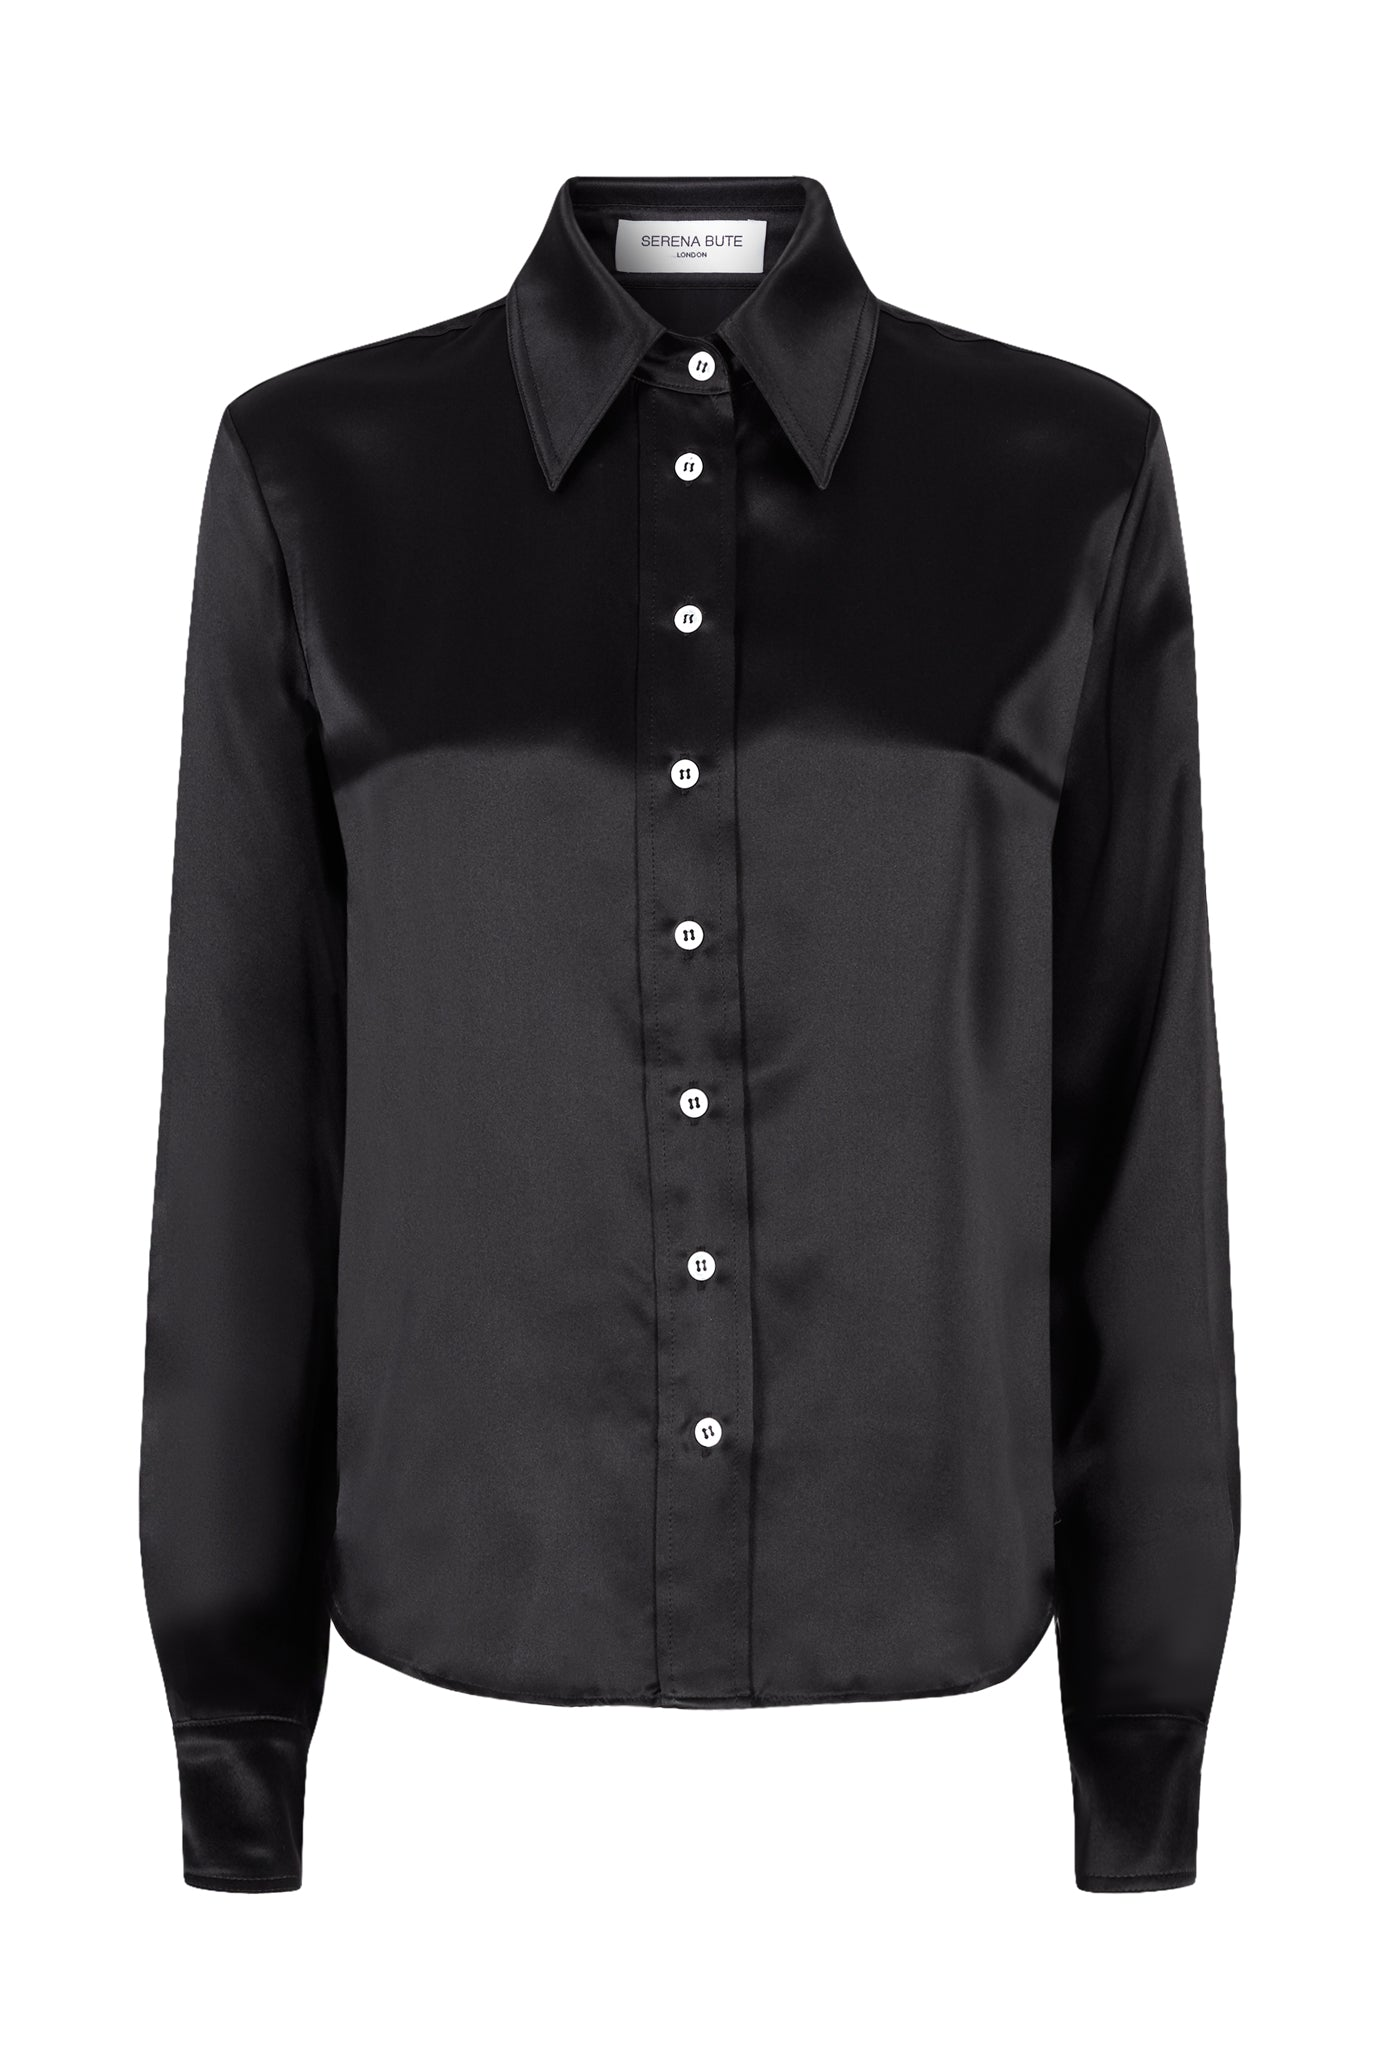 The Serena Fitted Shirt - Black Satin Silk